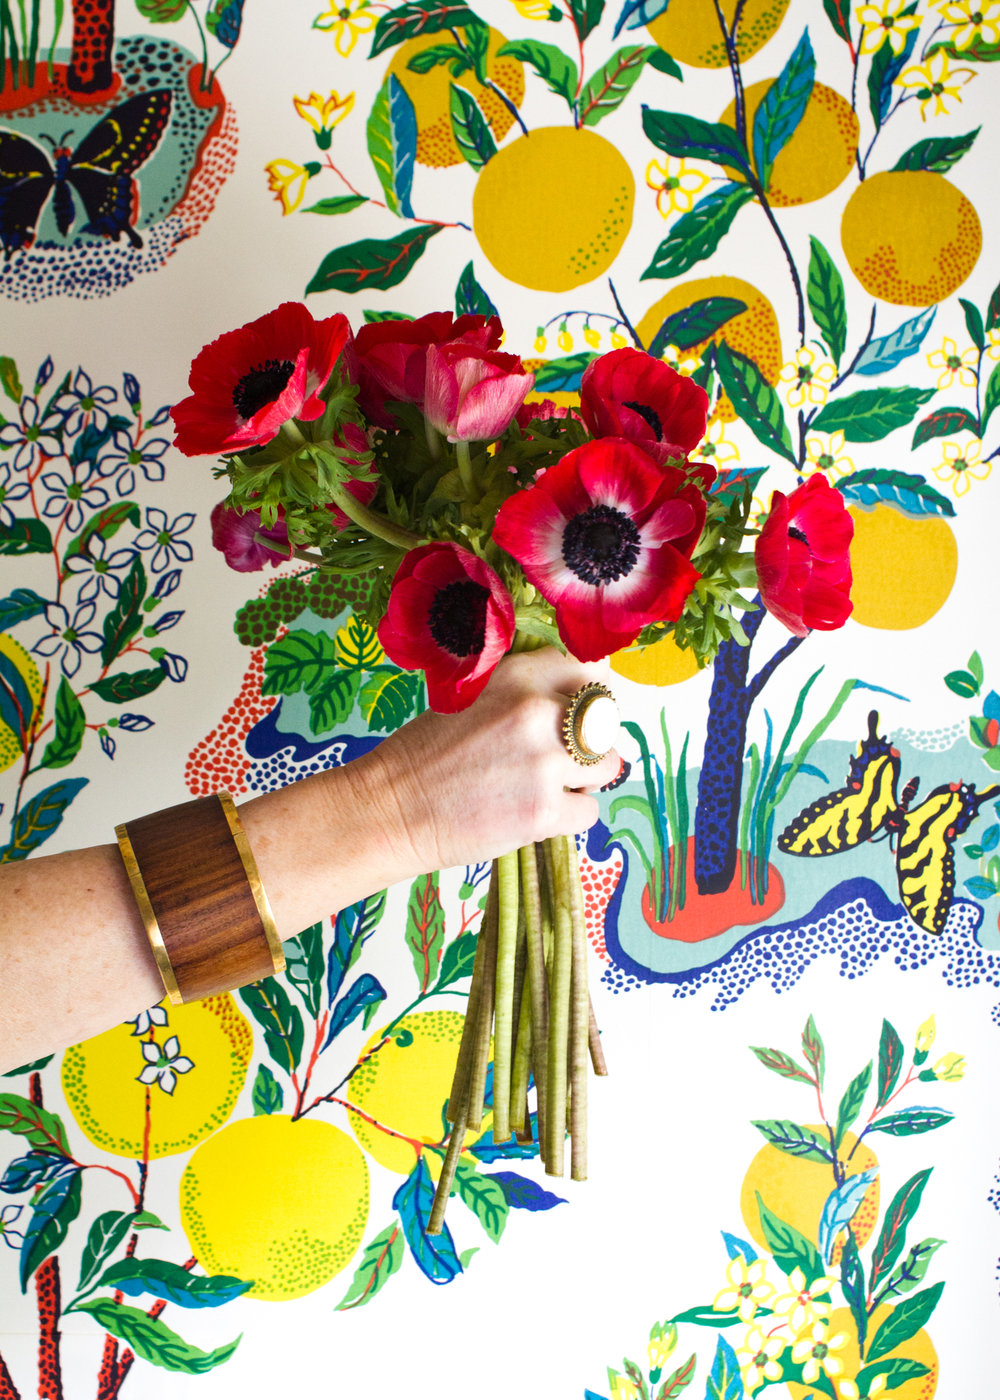 Schumacher's Josef Frank Wallpaper // Pencil & Paper Co.